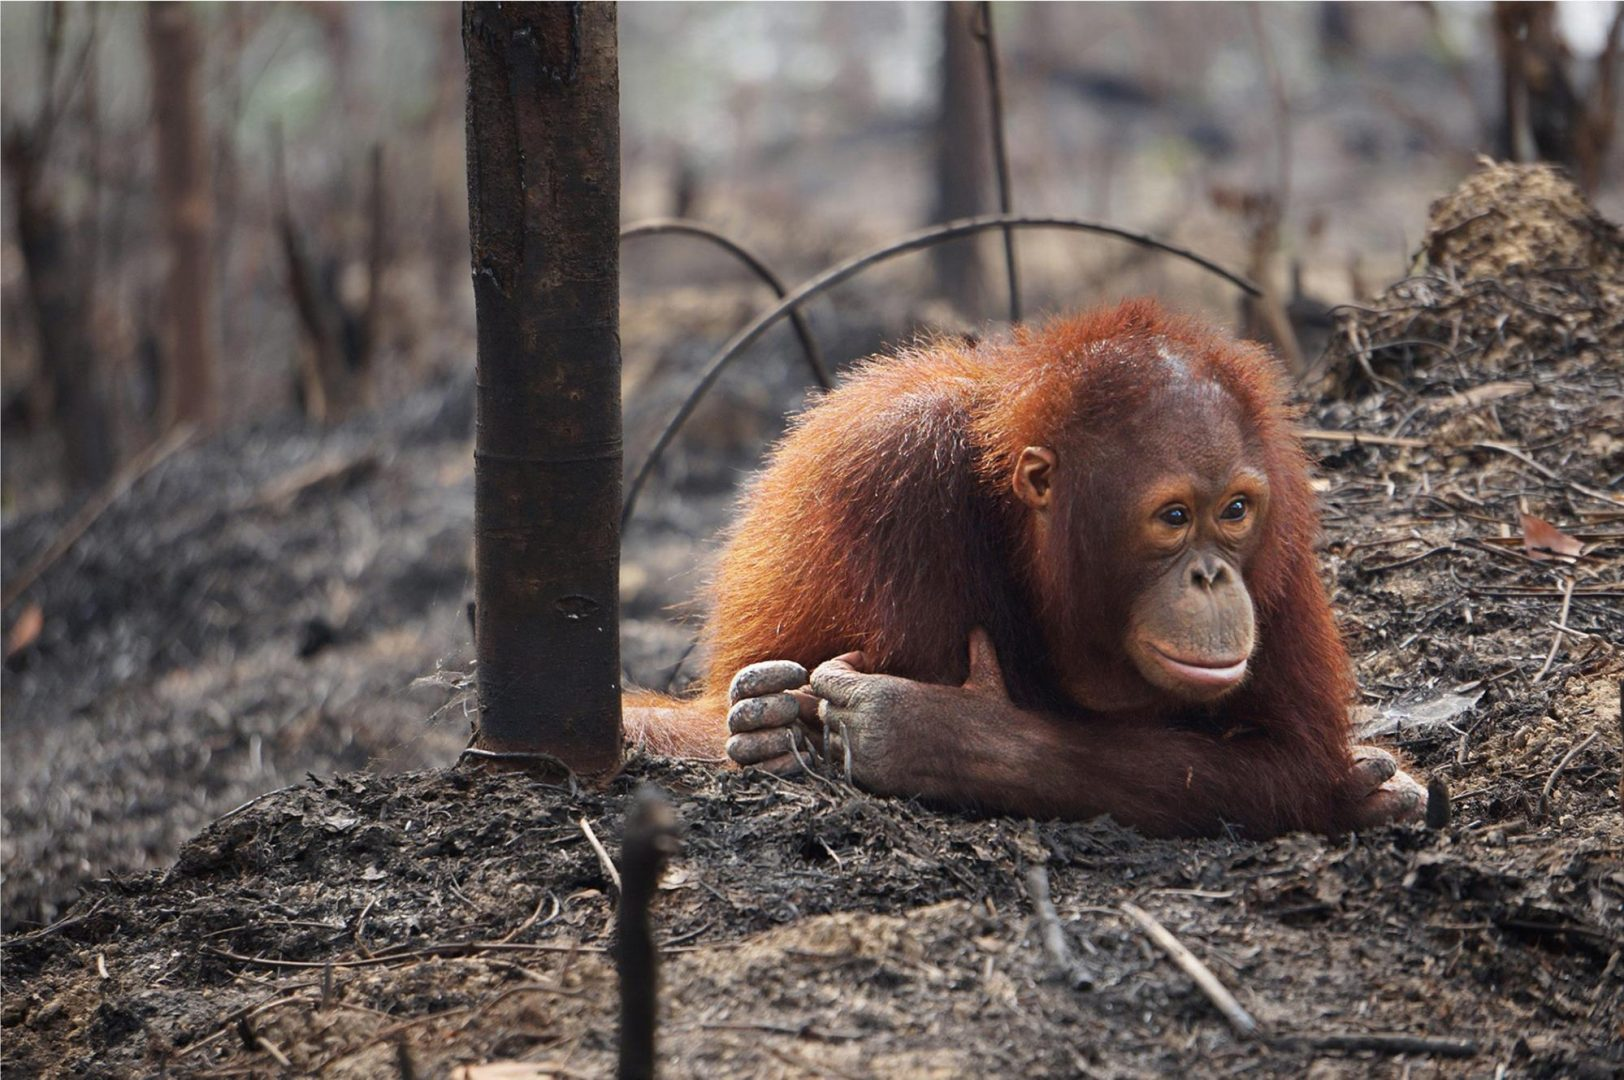 An orangutan sitting on the ground of a rainforest area that has been cleared for palm oil plantations.